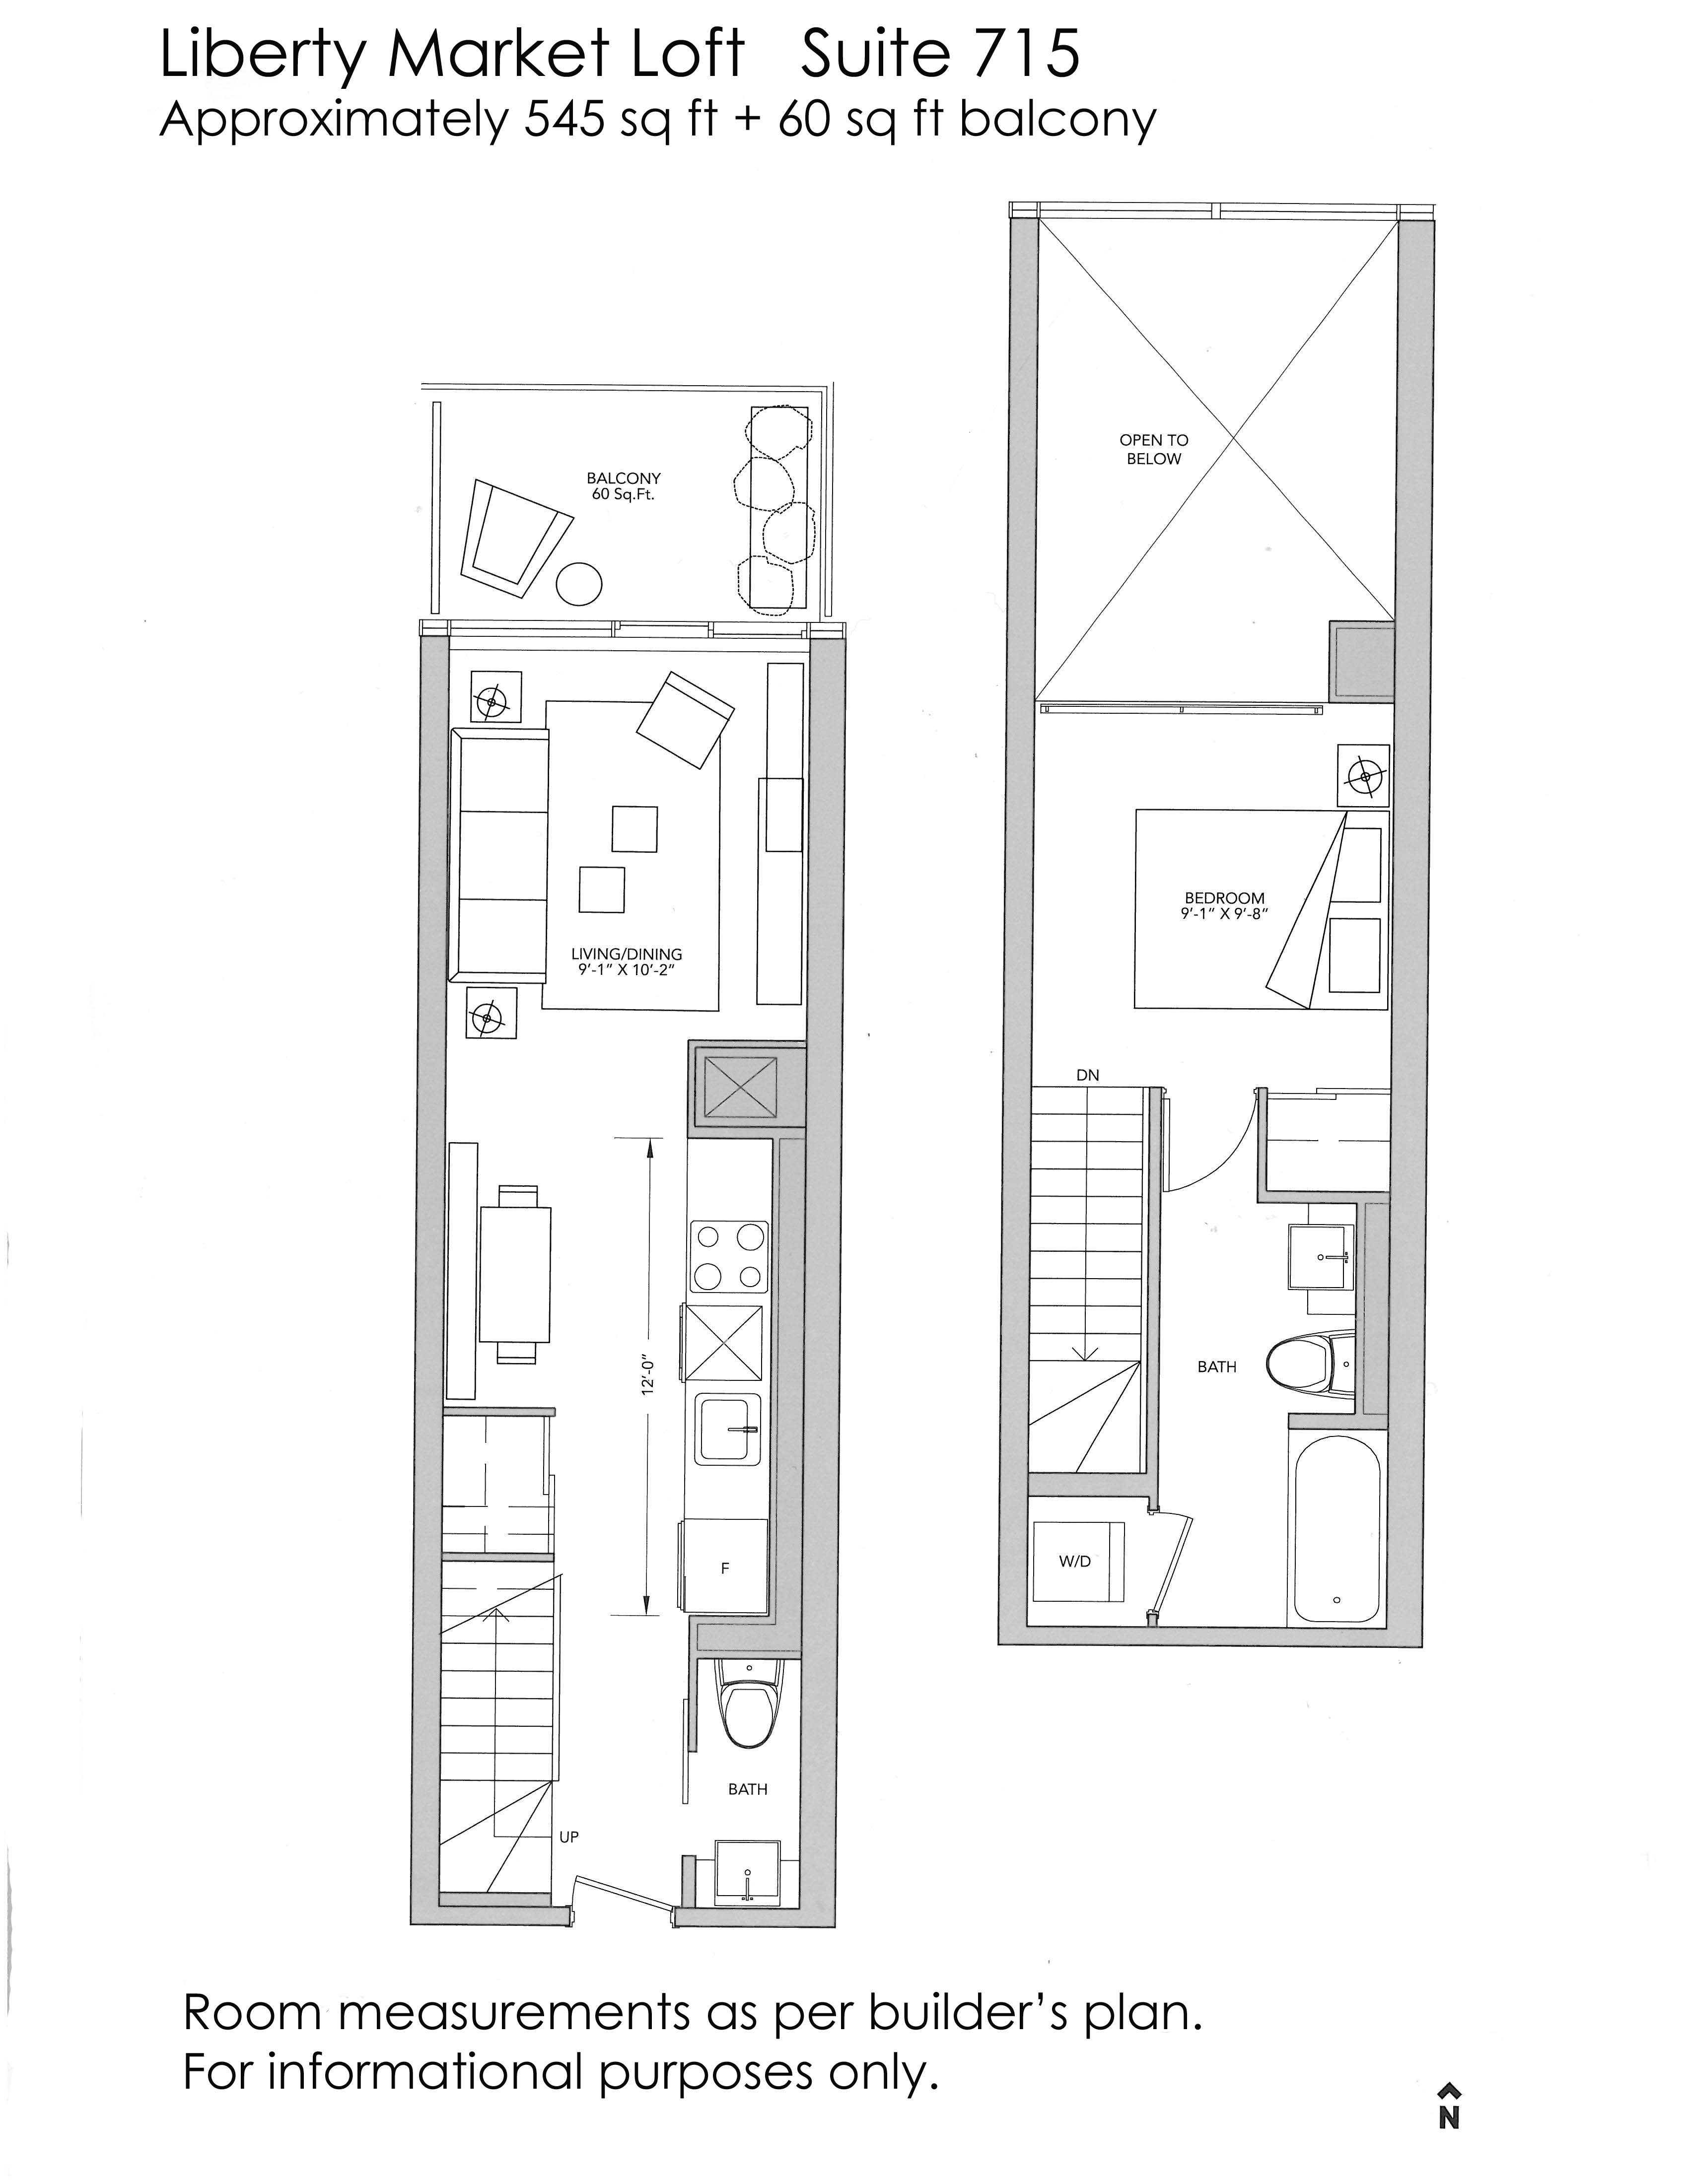 Just sold over asking price 1 bedroom loft suite at 5 for Grooming shop floor plans